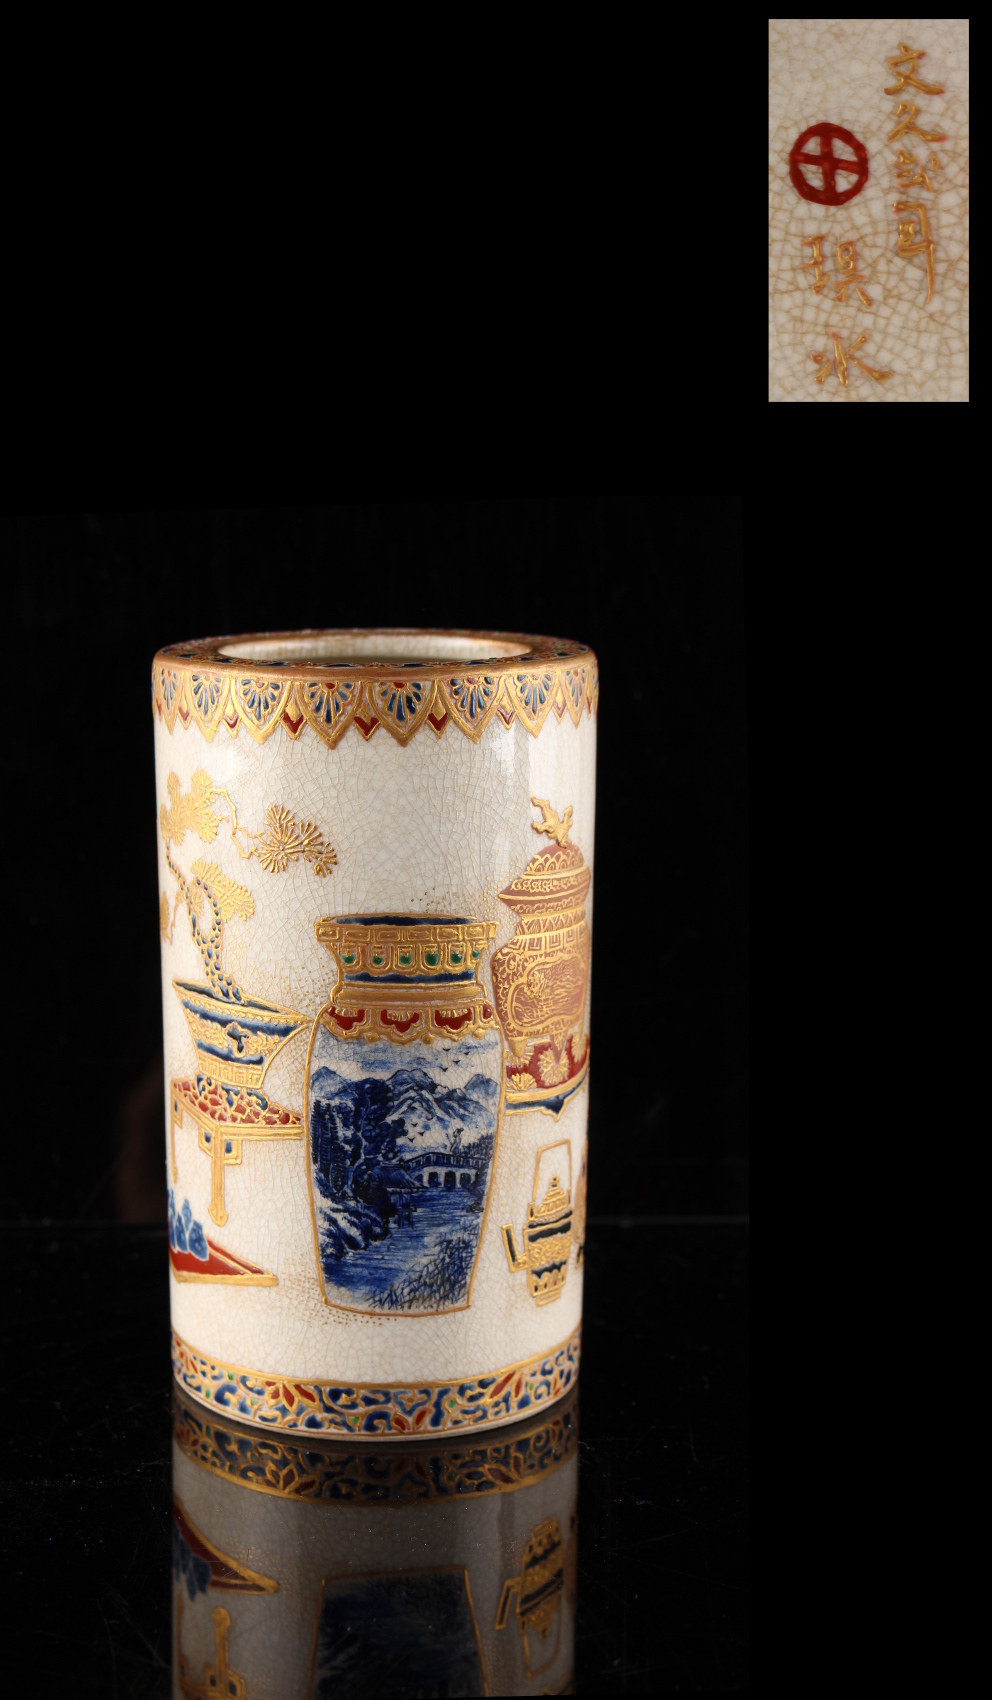 An unusual Japanese Satsuma cylindrical vase, Meiji period (1868-1912), painted with precious